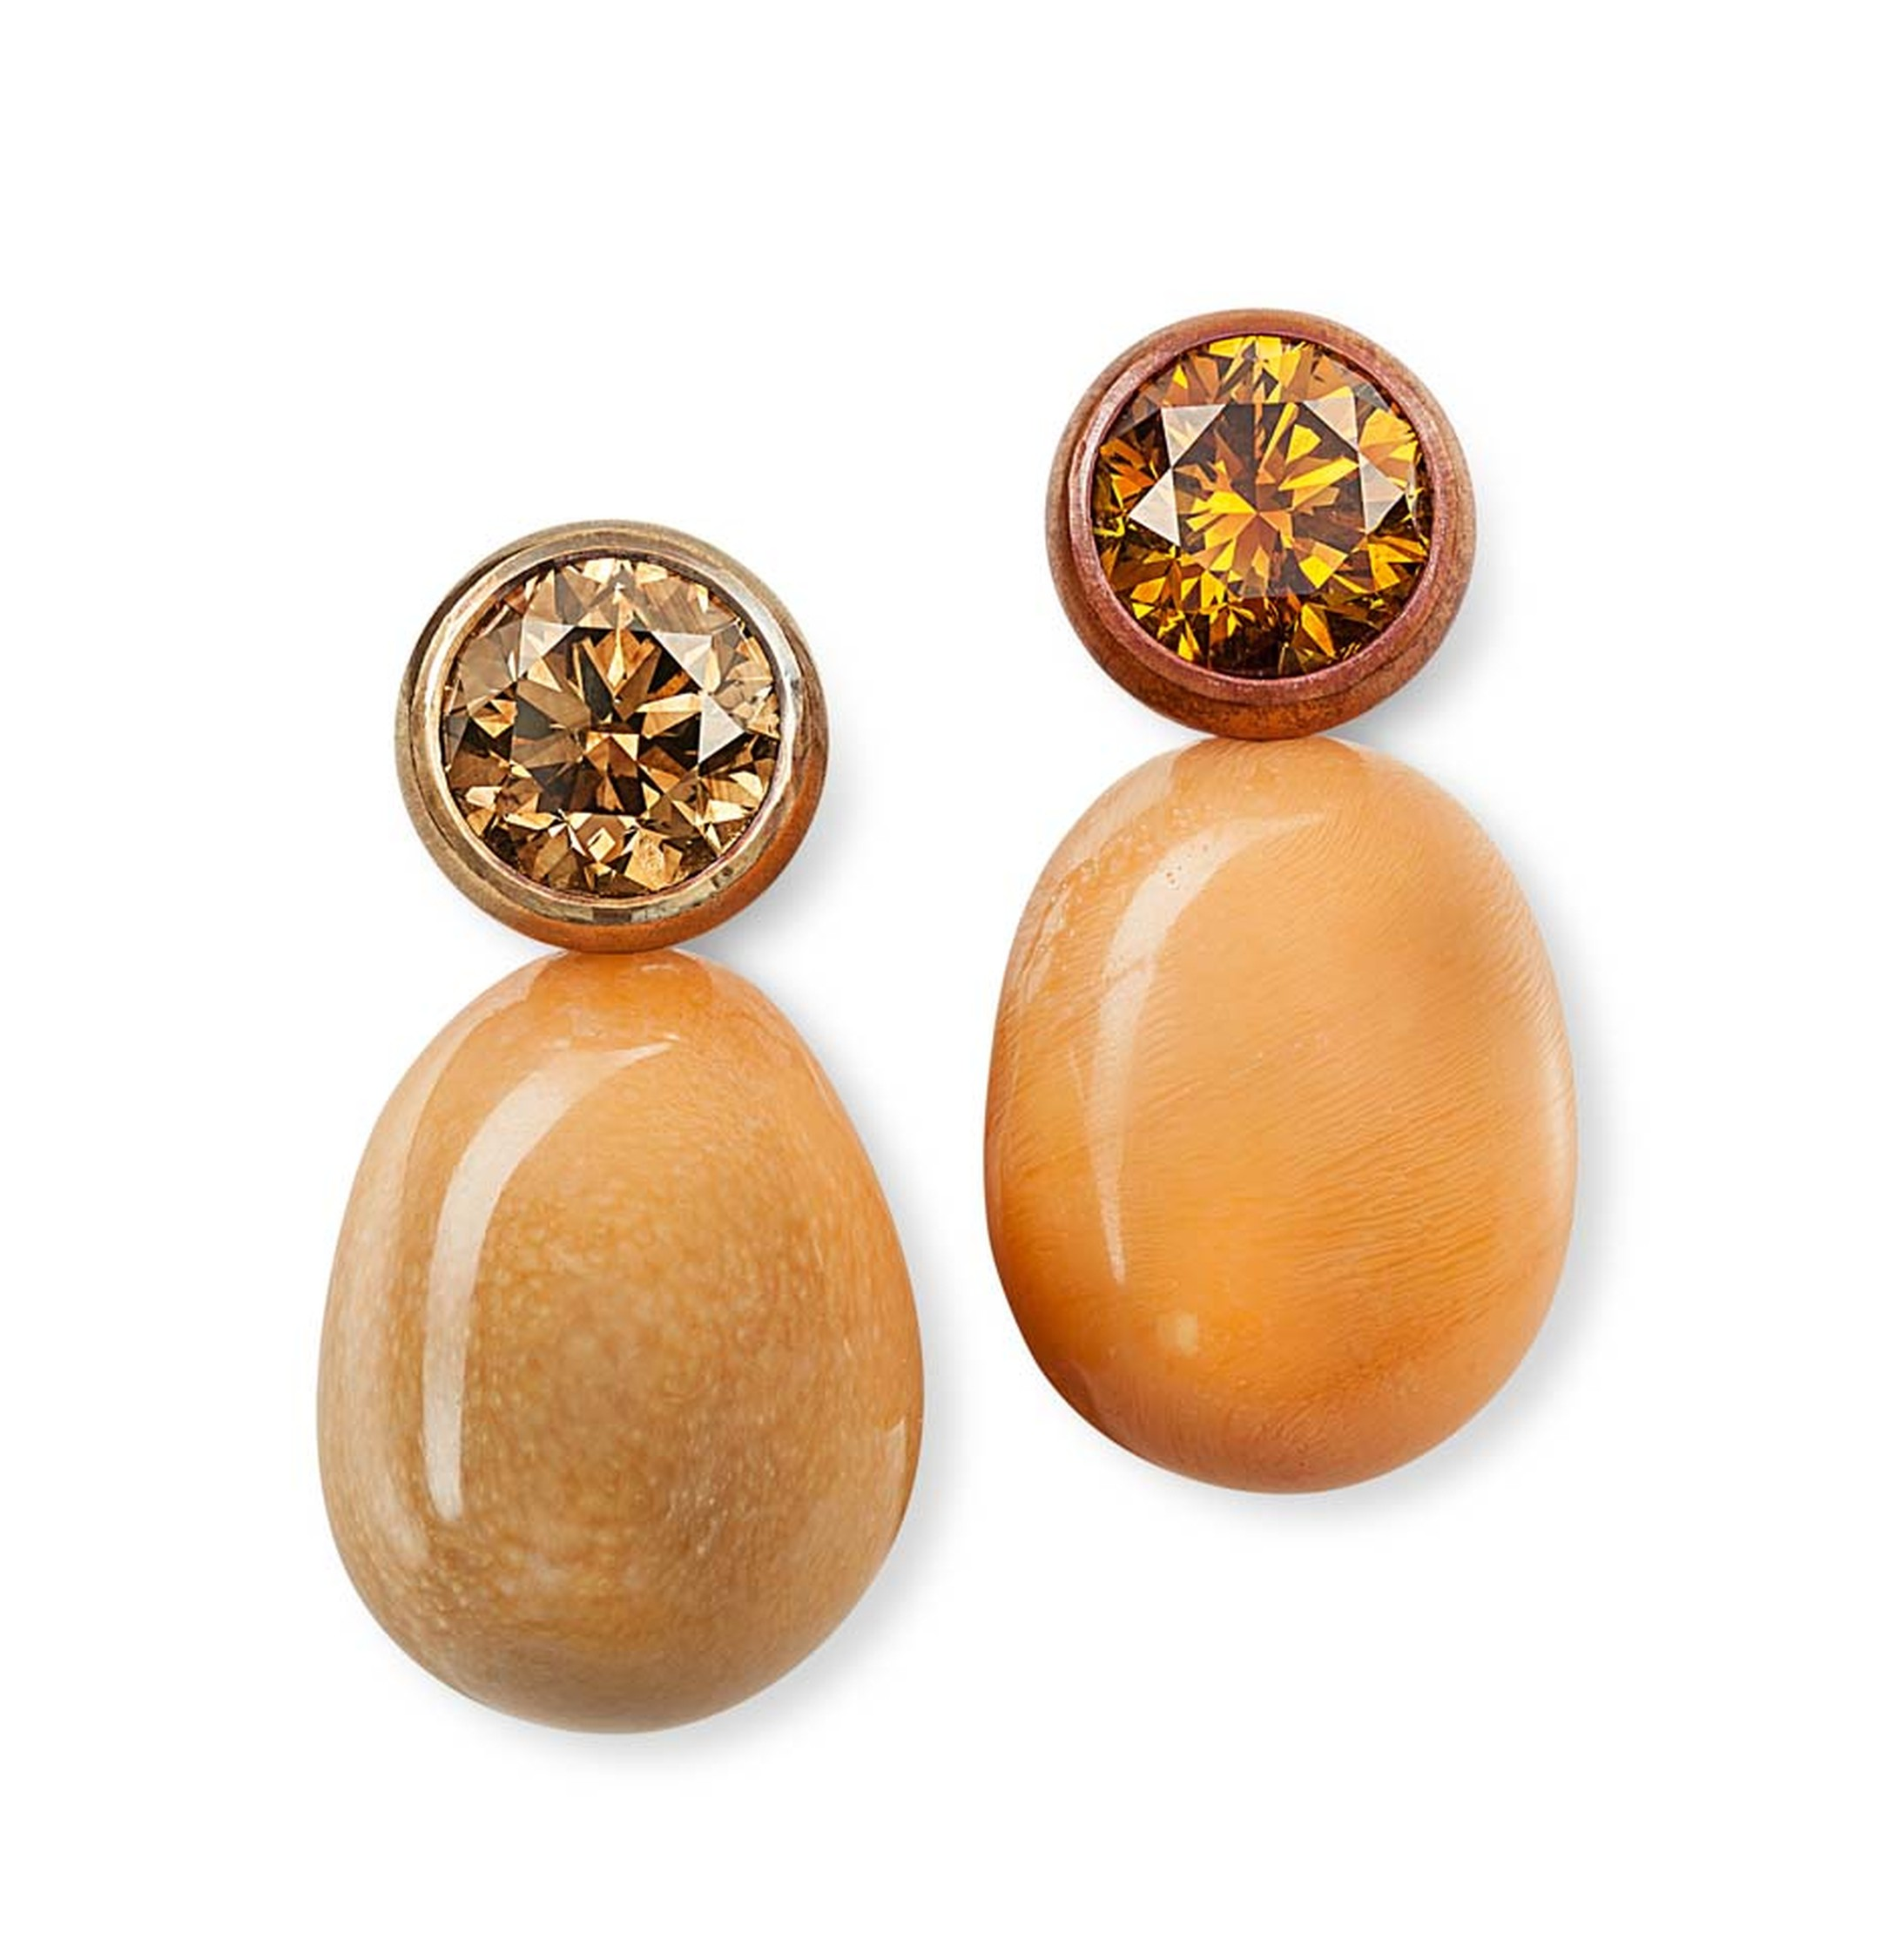 Hemmerle earrings with Melo pearls and diamonds set in copper and gold.